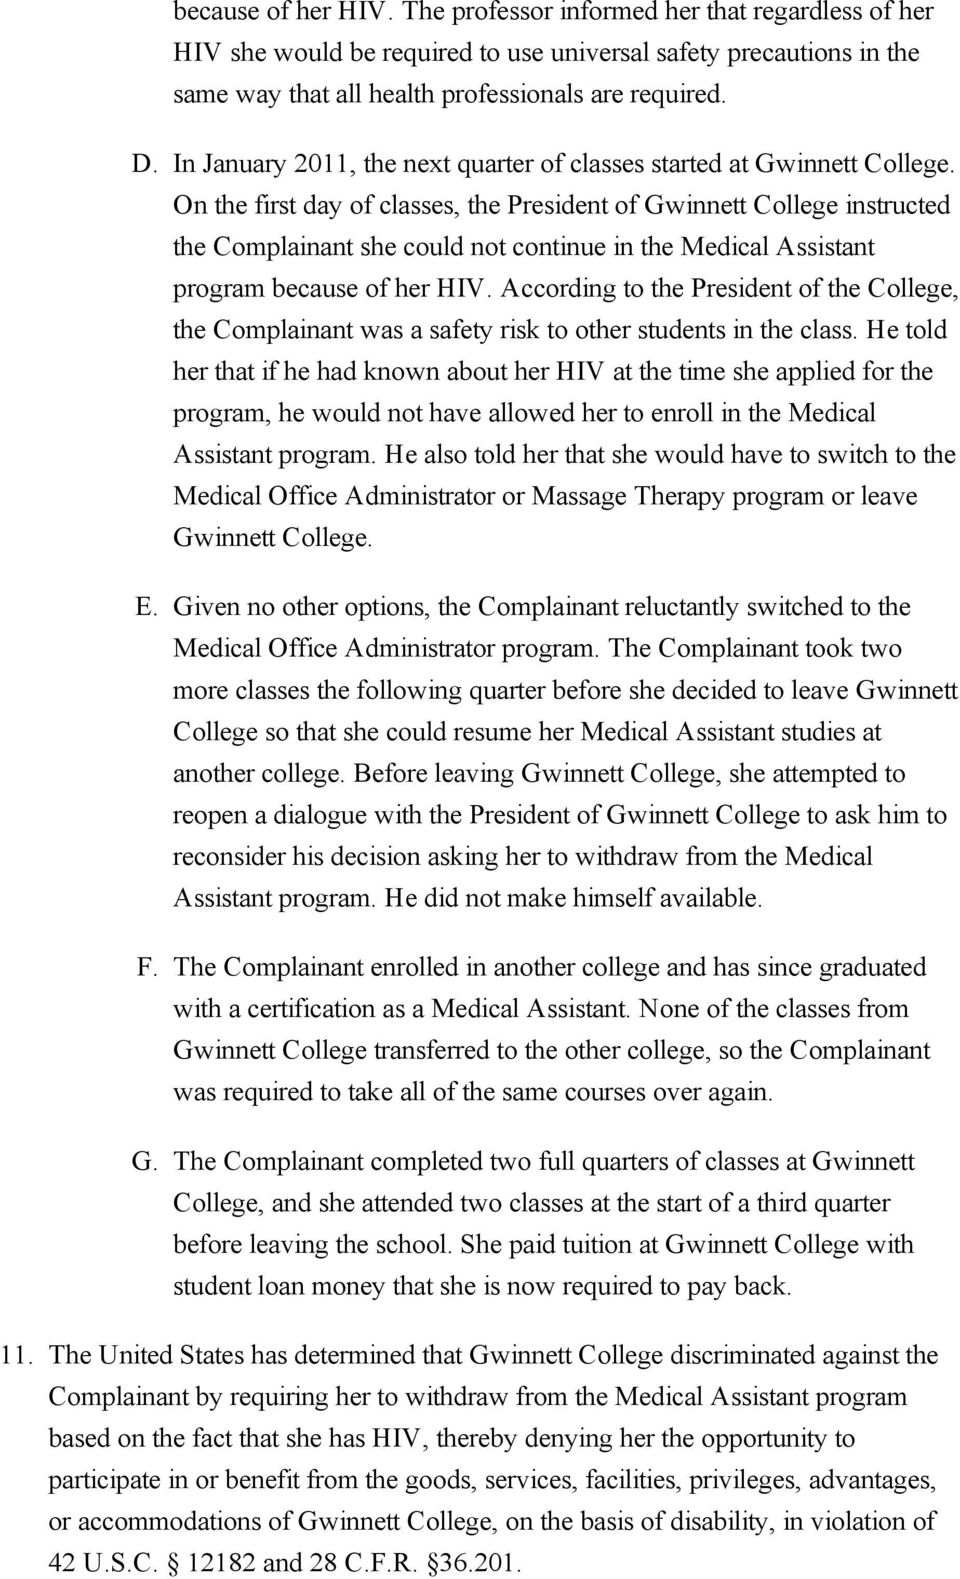 On the first day of classes, the President of Gwinnett College instructed the Complainant she could not continue in the Medical Assistant program because of her HIV.